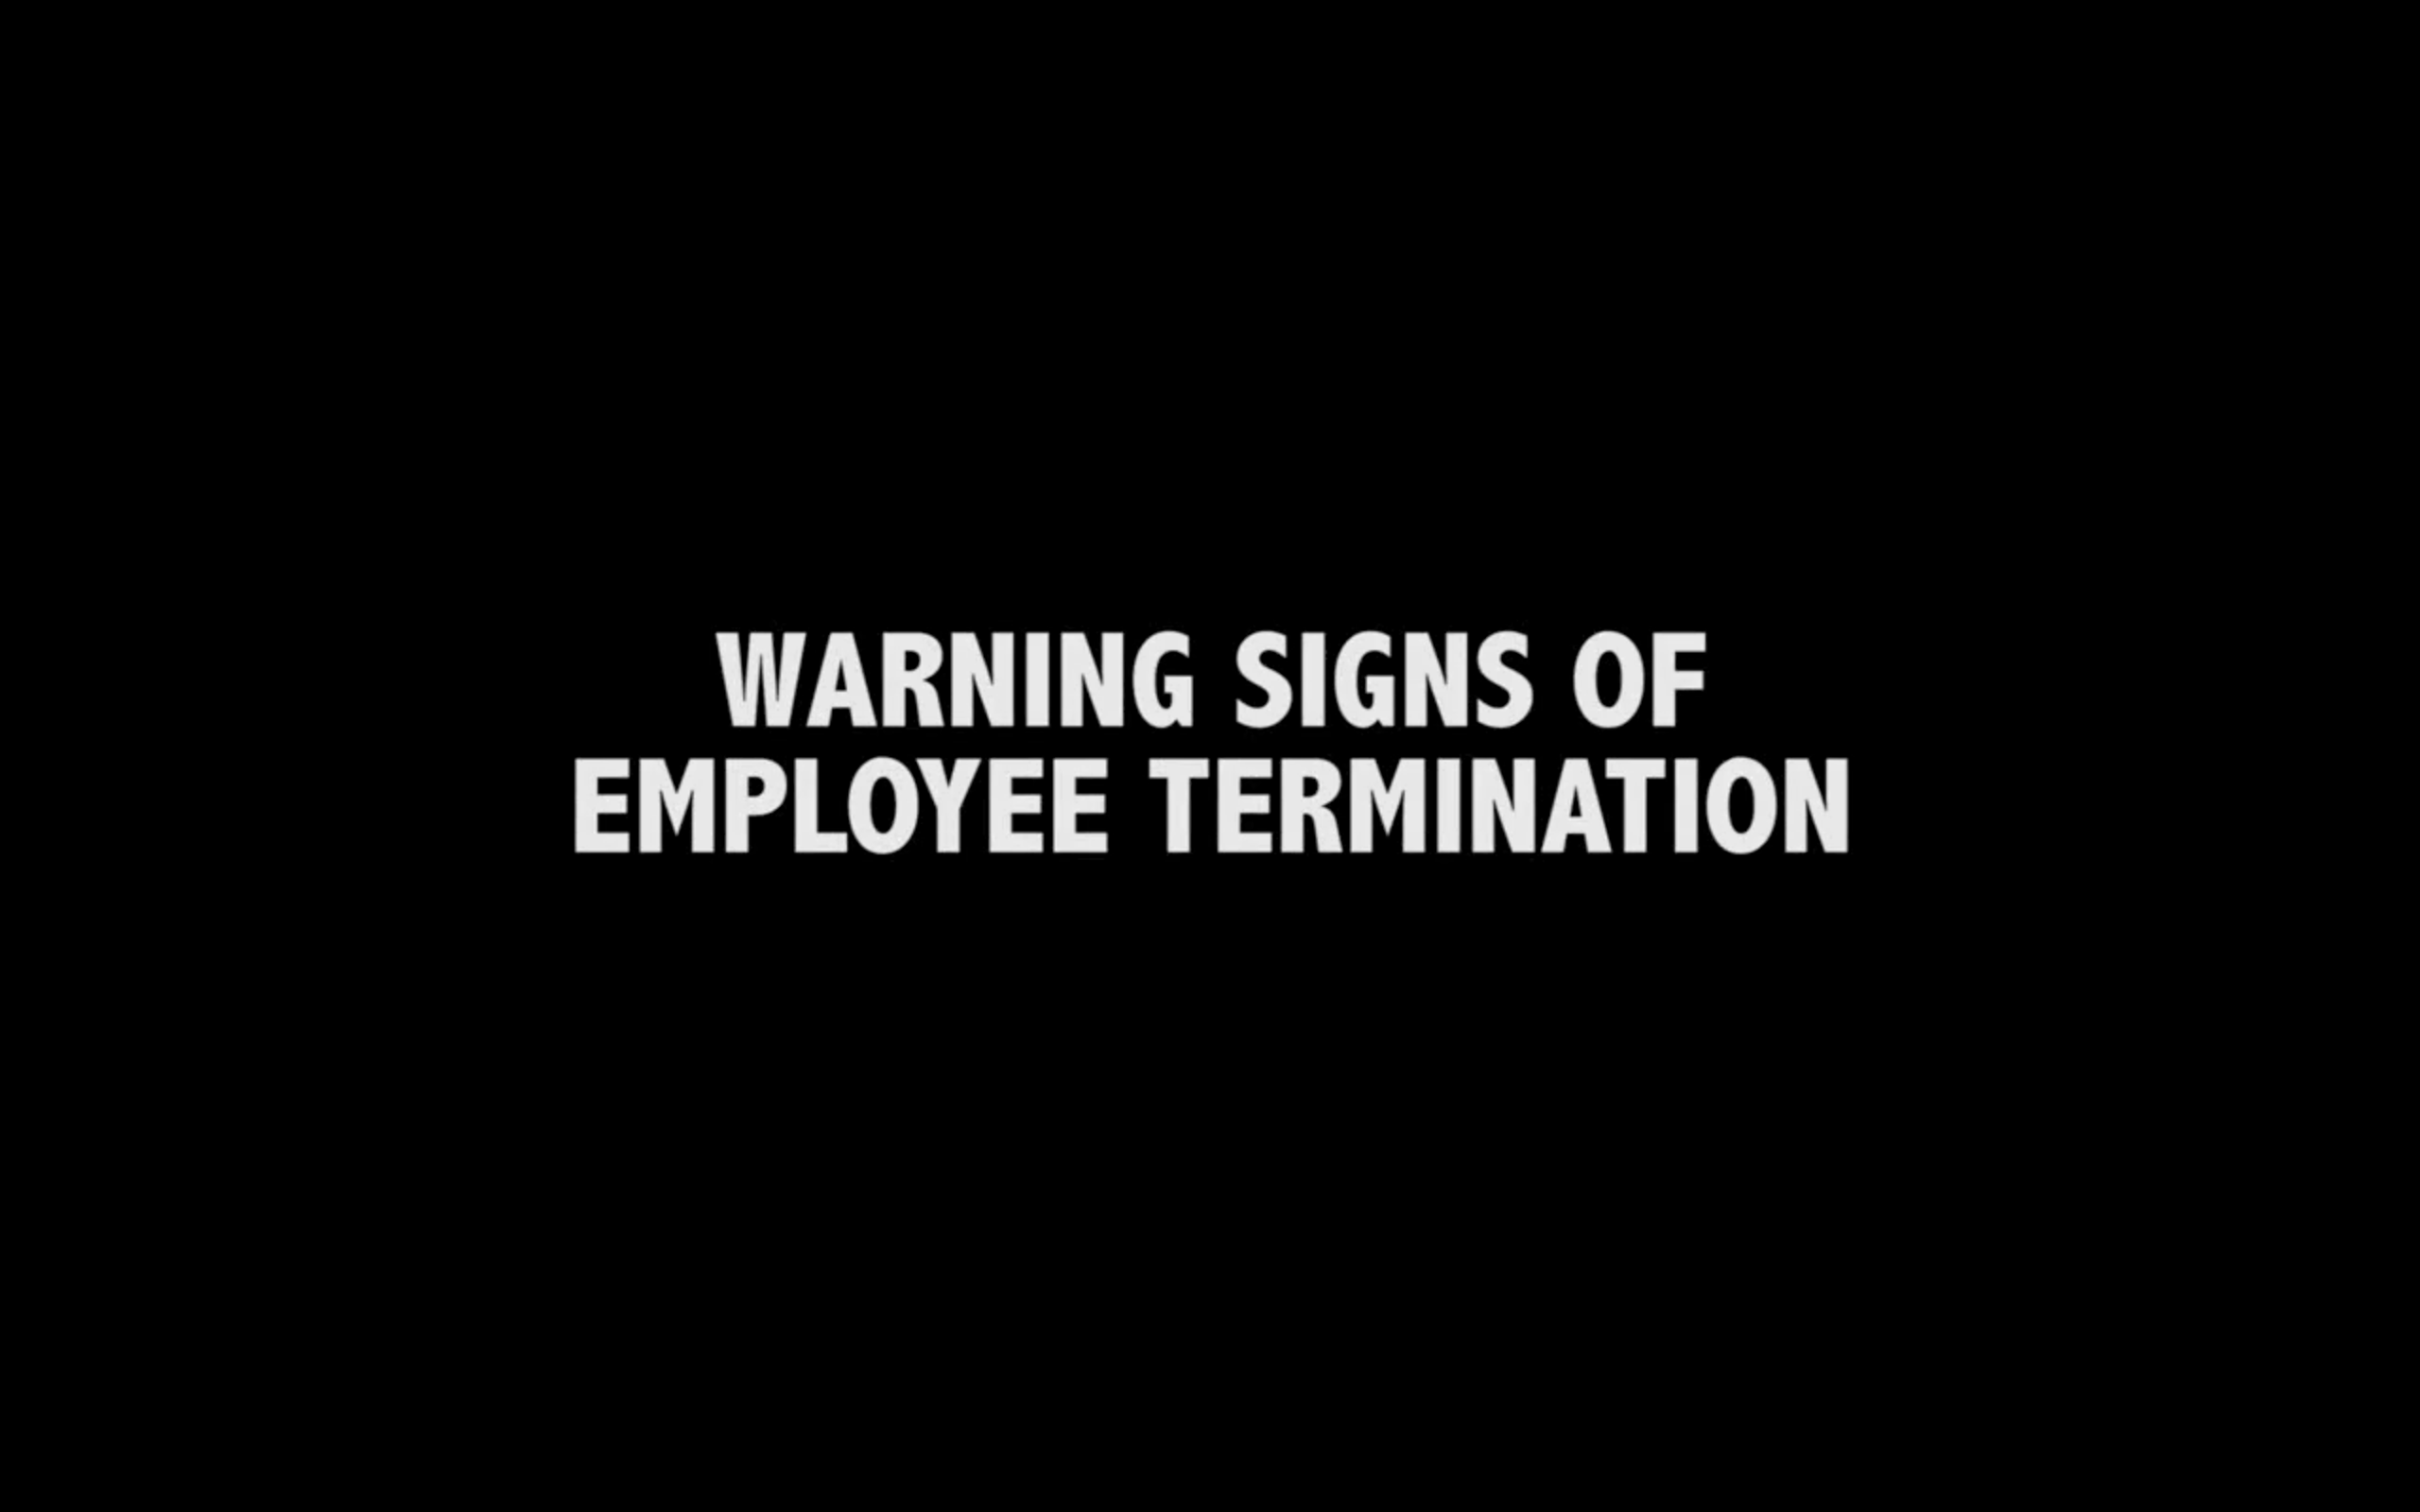 Warning Signs of Employee Termination